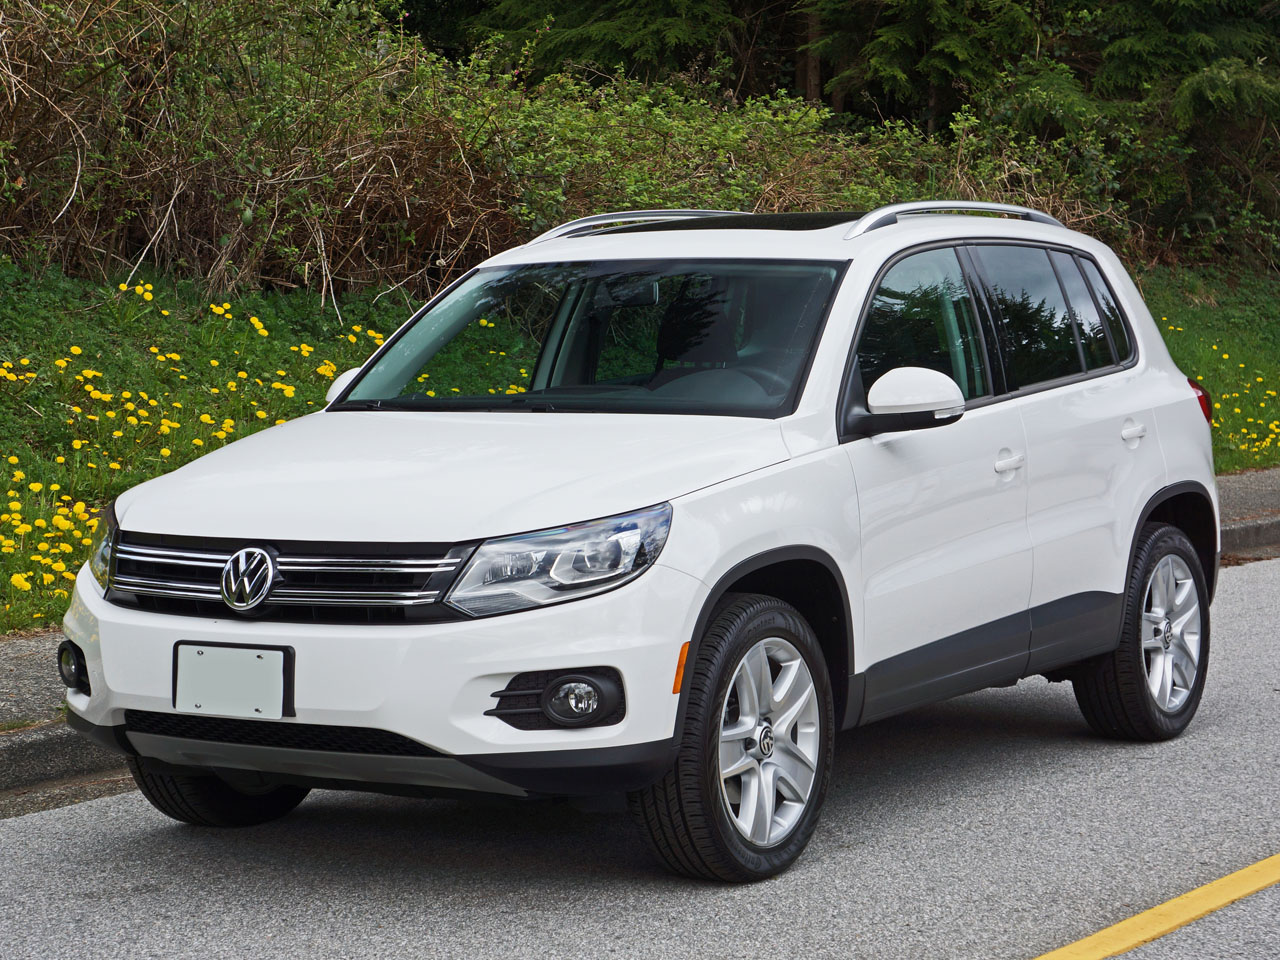 2014 volkswagen tiguan comfortline 4motion road test. Black Bedroom Furniture Sets. Home Design Ideas